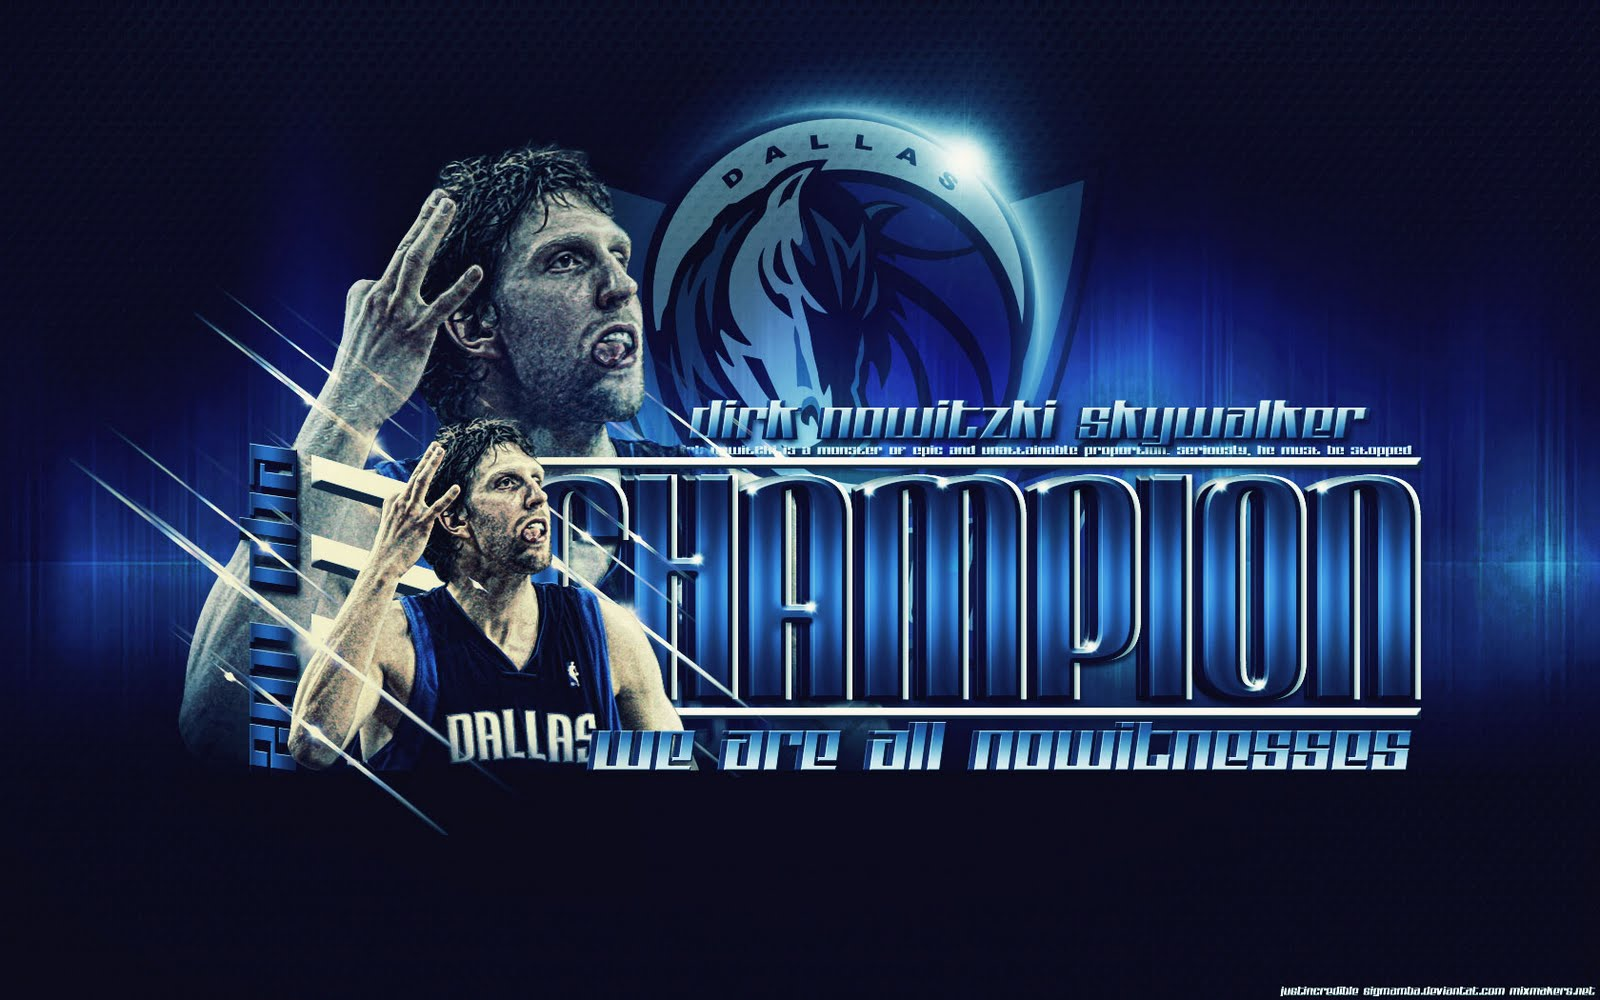 http://3.bp.blogspot.com/-KIr1_ZMkjX0/Tib7n_-XKvI/AAAAAAAAHc4/NBF2Ae3hUBU/s1600/Dirk-Nowitzki-We-Are-All-Nowitnesses-Widescreen-Wallpaper-BasketWallpapers.com-.jpg